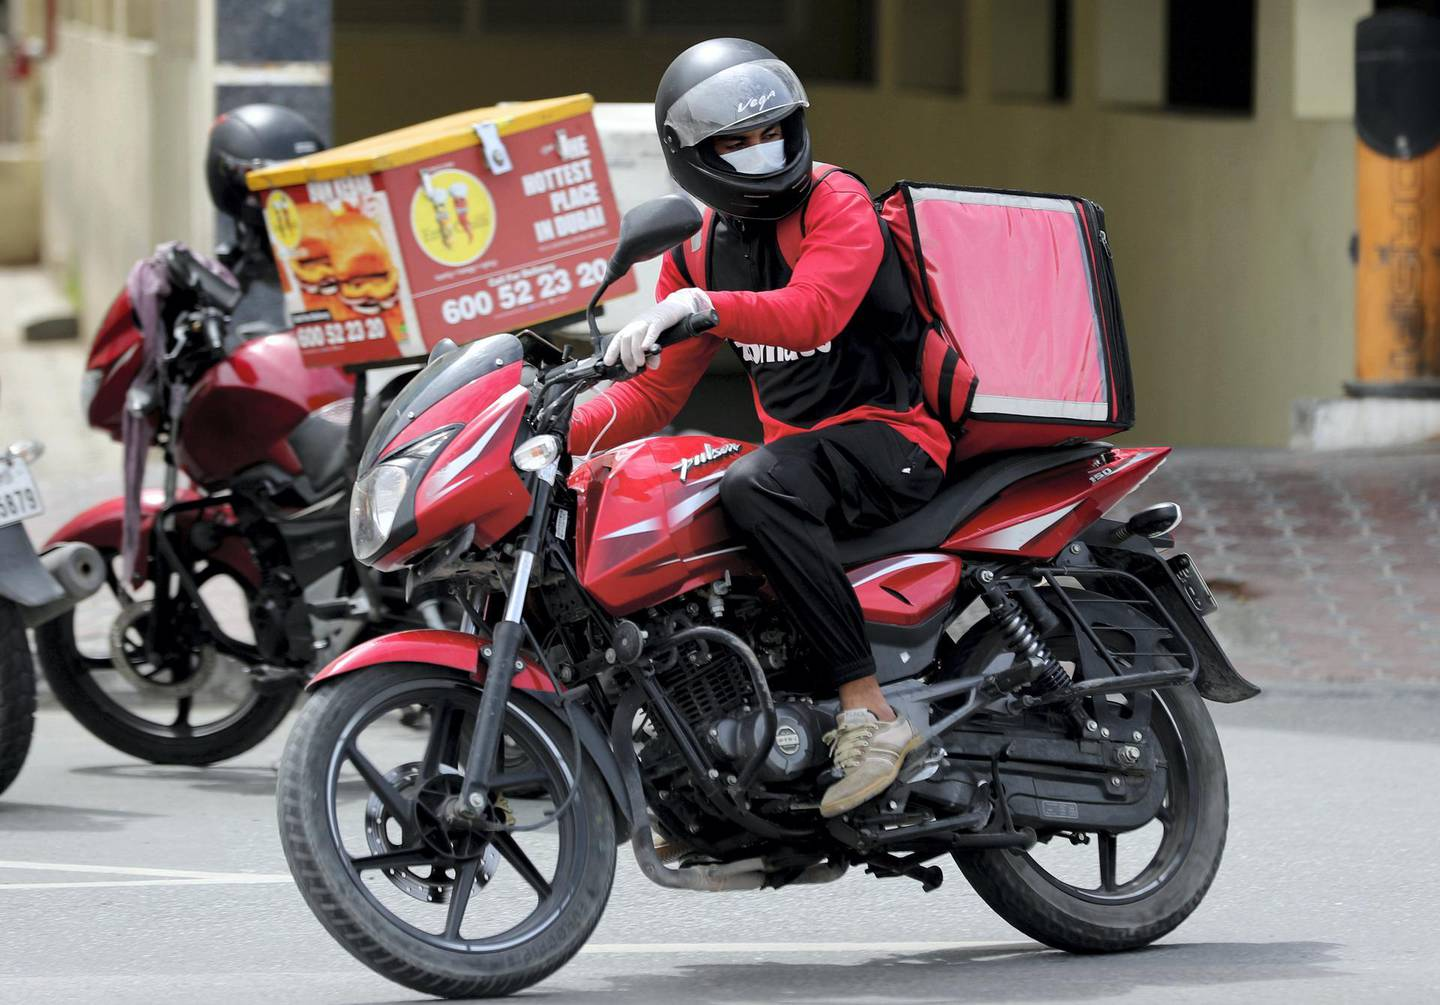 Dubai, United Arab Emirates - Reporter: N/A: A Zomato driver delivers food with a facemask on due to the corona outbreak. Monday, April 13th, 2020. Dubai. Chris Whiteoak / The National